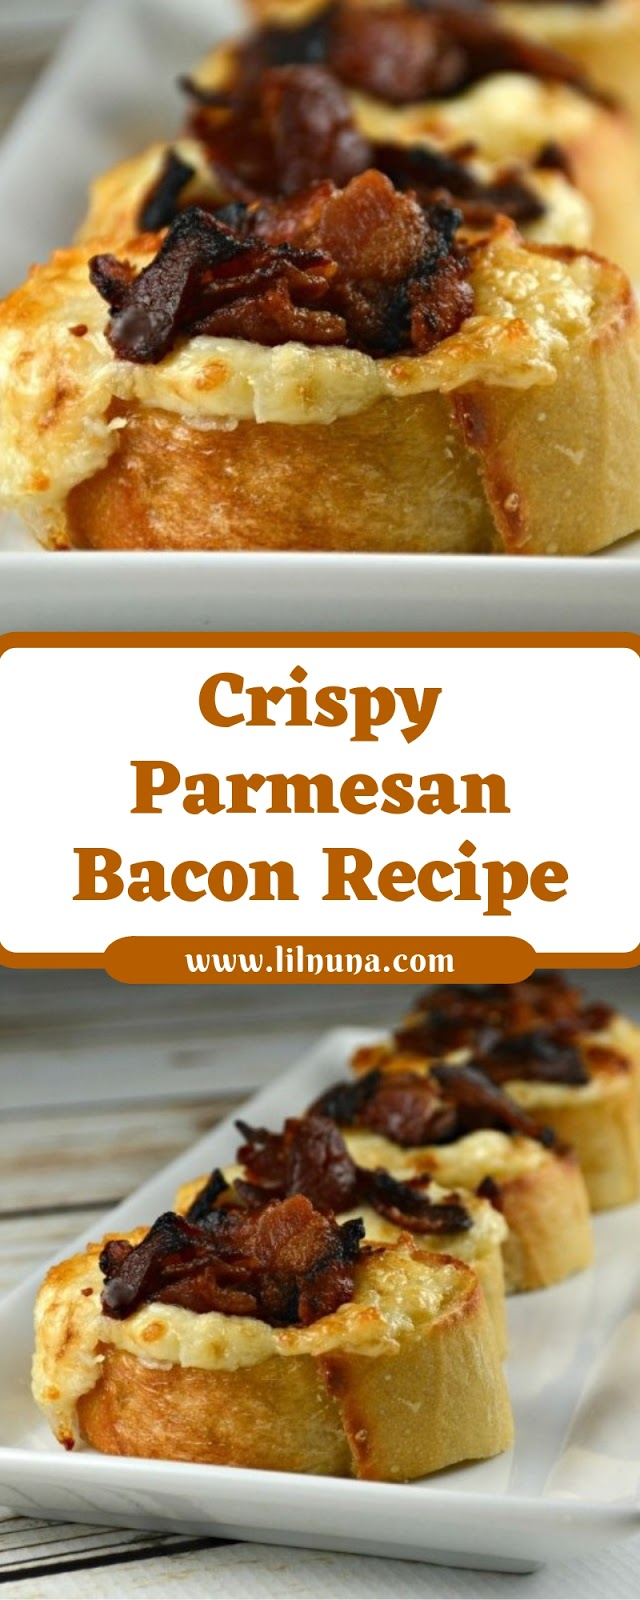 Crispy Parmesan Bacon Recipe